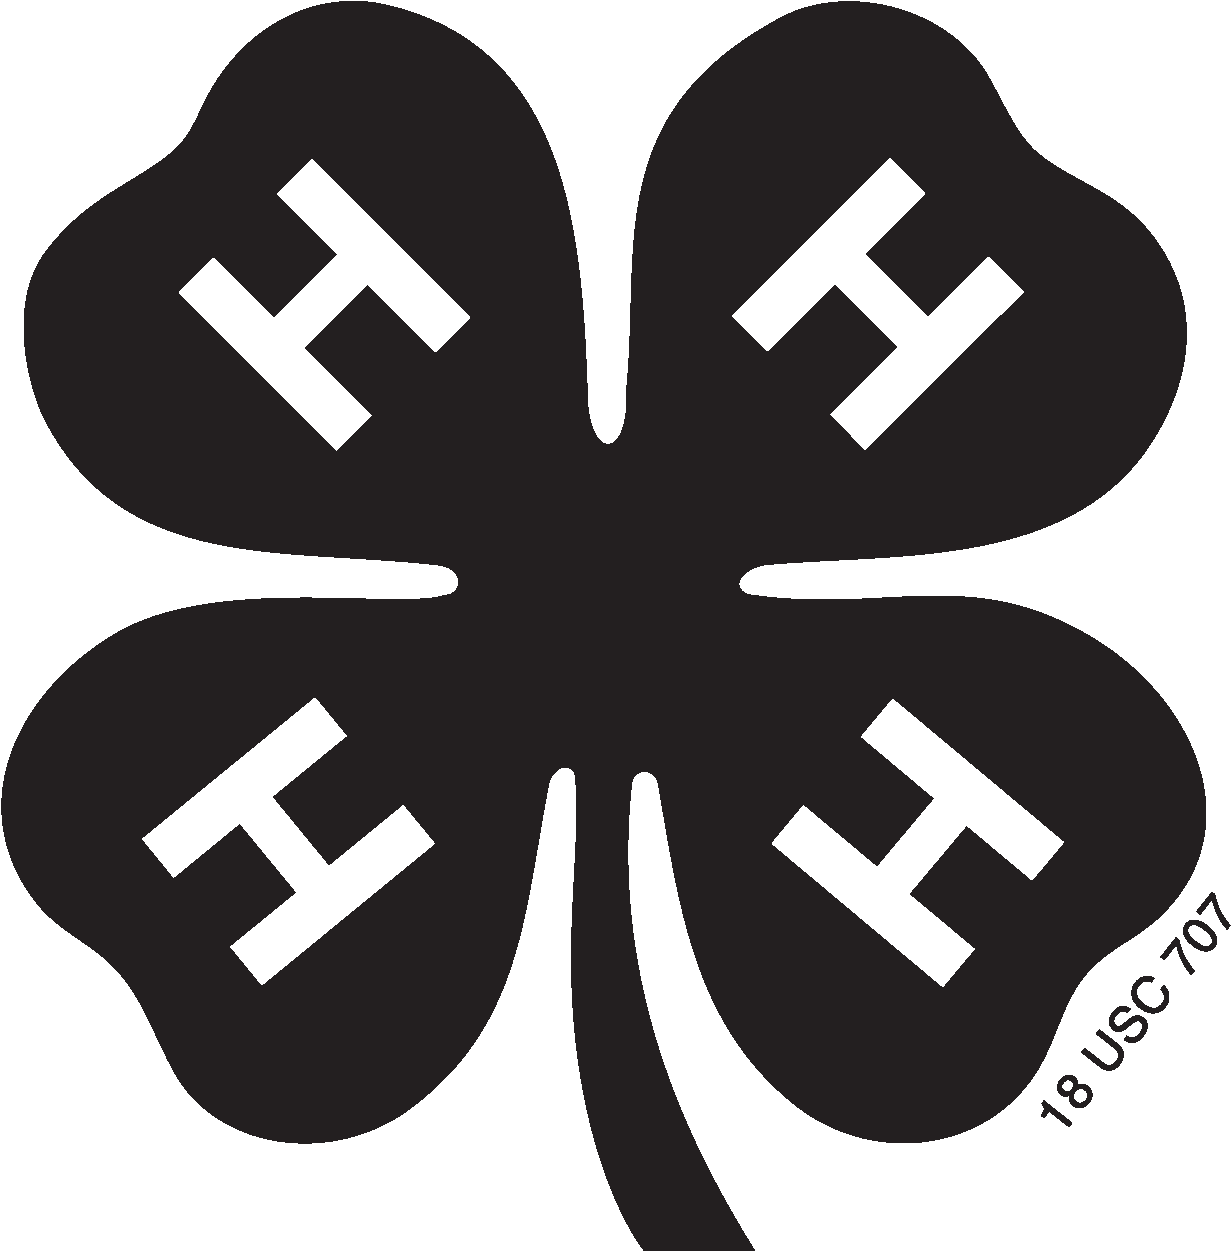 HD Black And White Library 4h Clover Clipart.